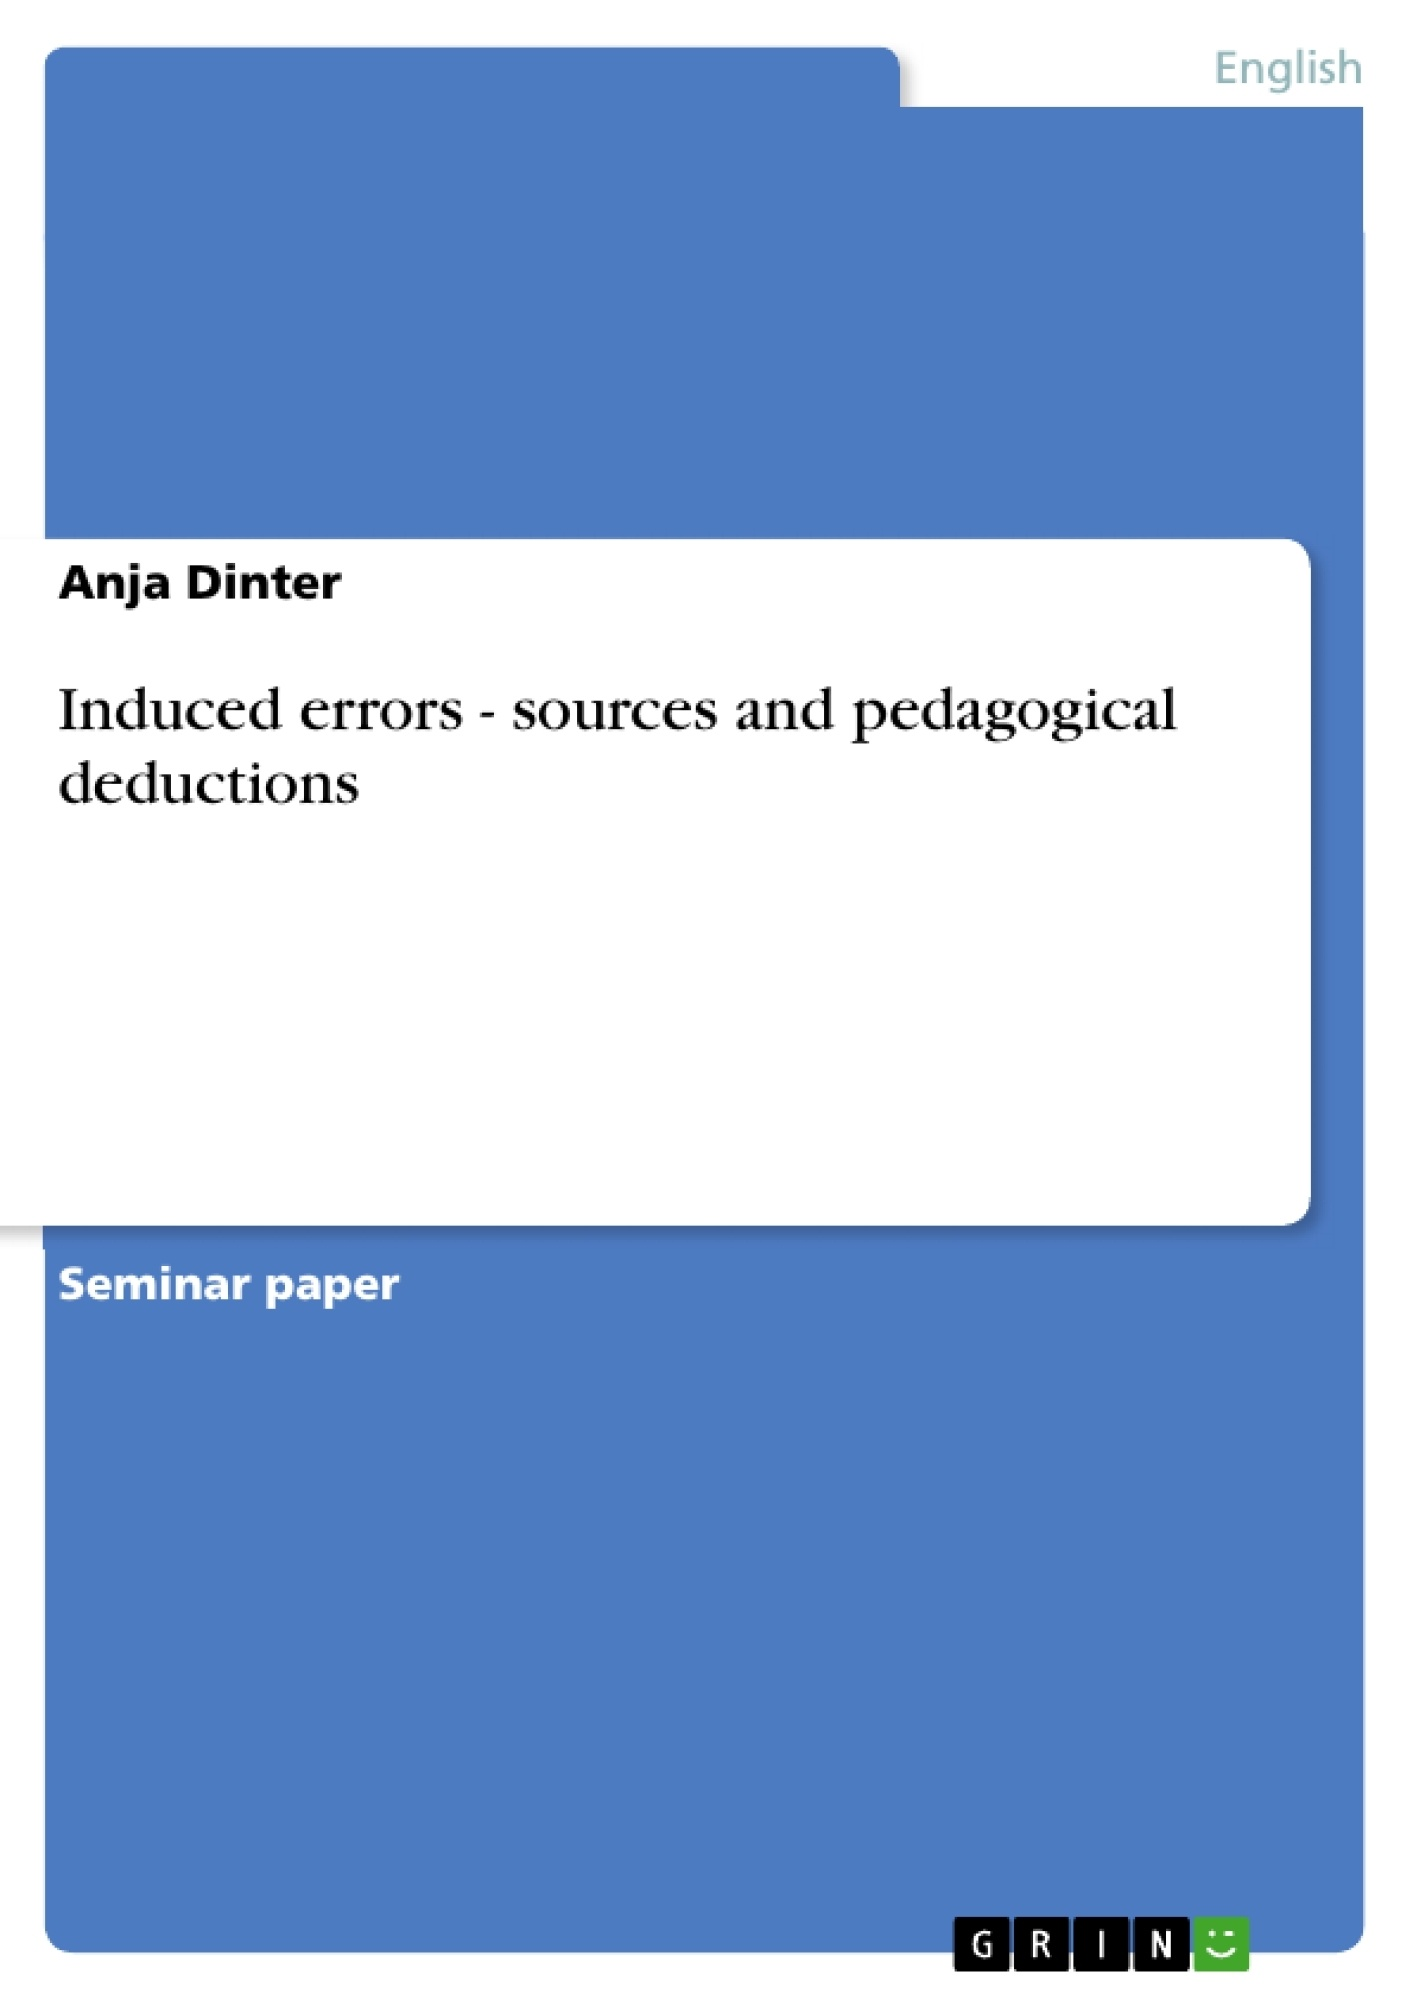 Title: Induced errors - sources and pedagogical deductions